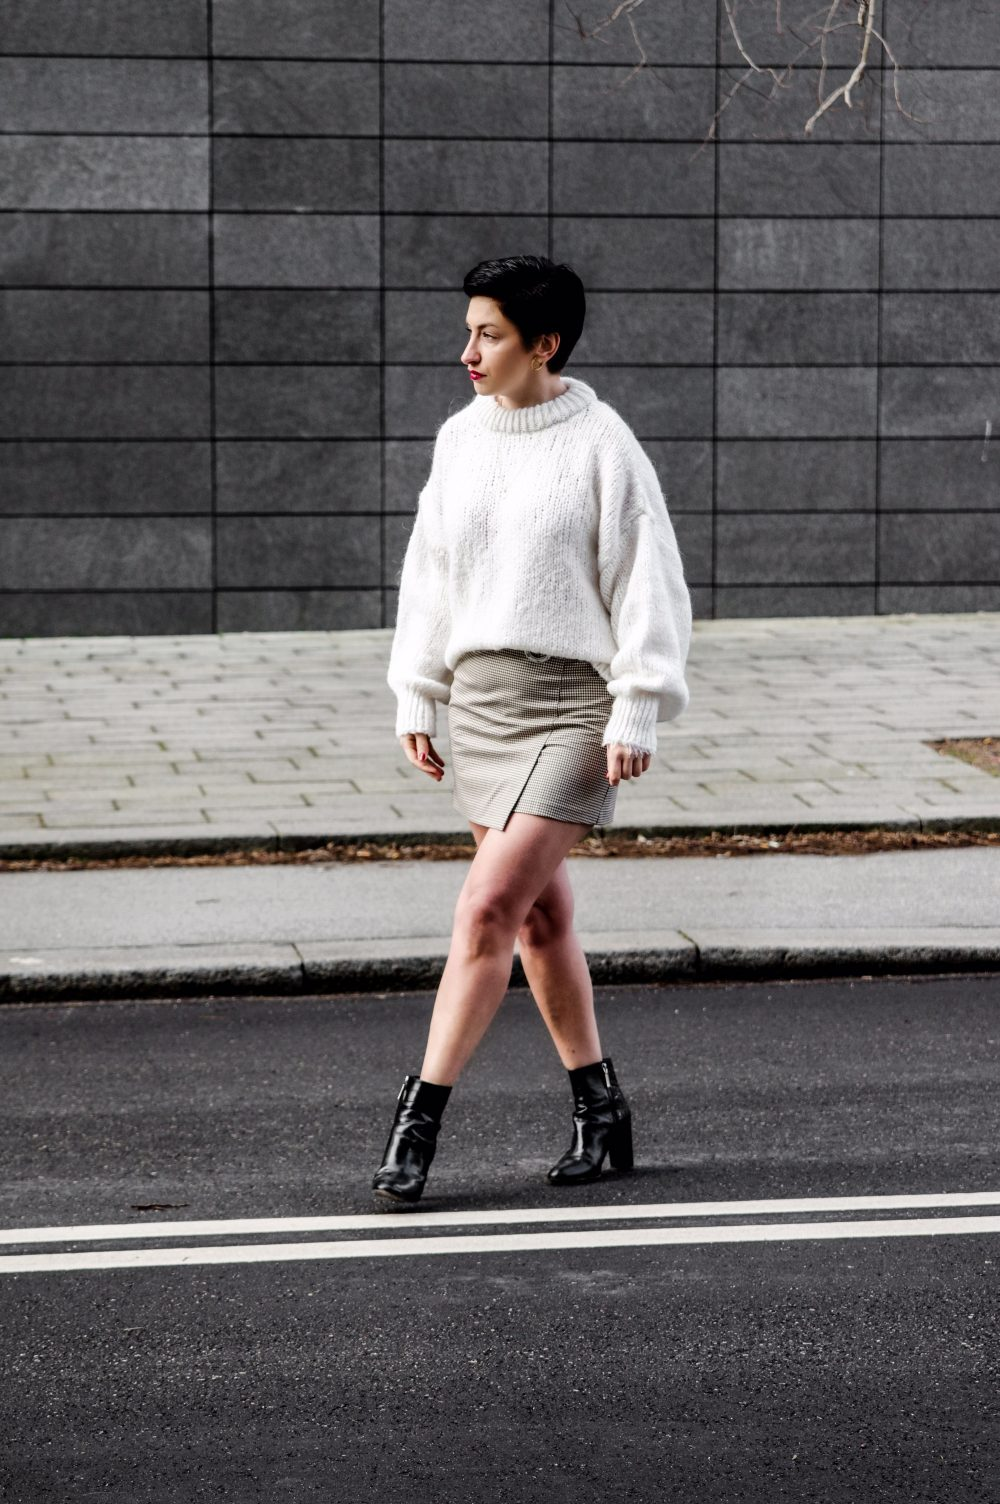 StreetStyle fashion 2018, oversized sweater, wrap skirt, winter outft, work wear, spring outfit, scandinavian style